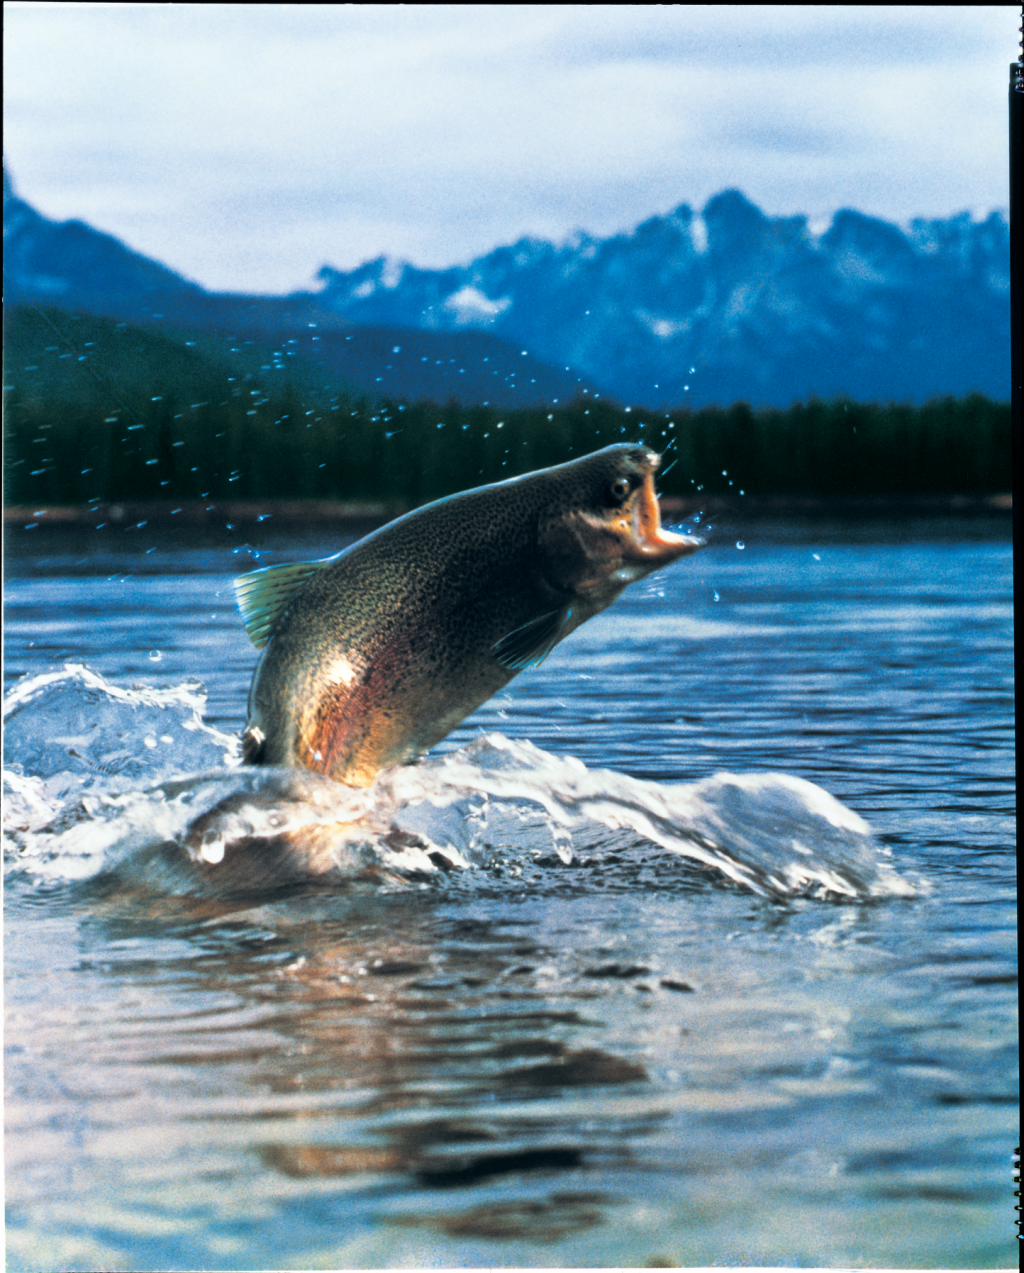 photo of a rainbow trout leaping into the air from a mountain lake